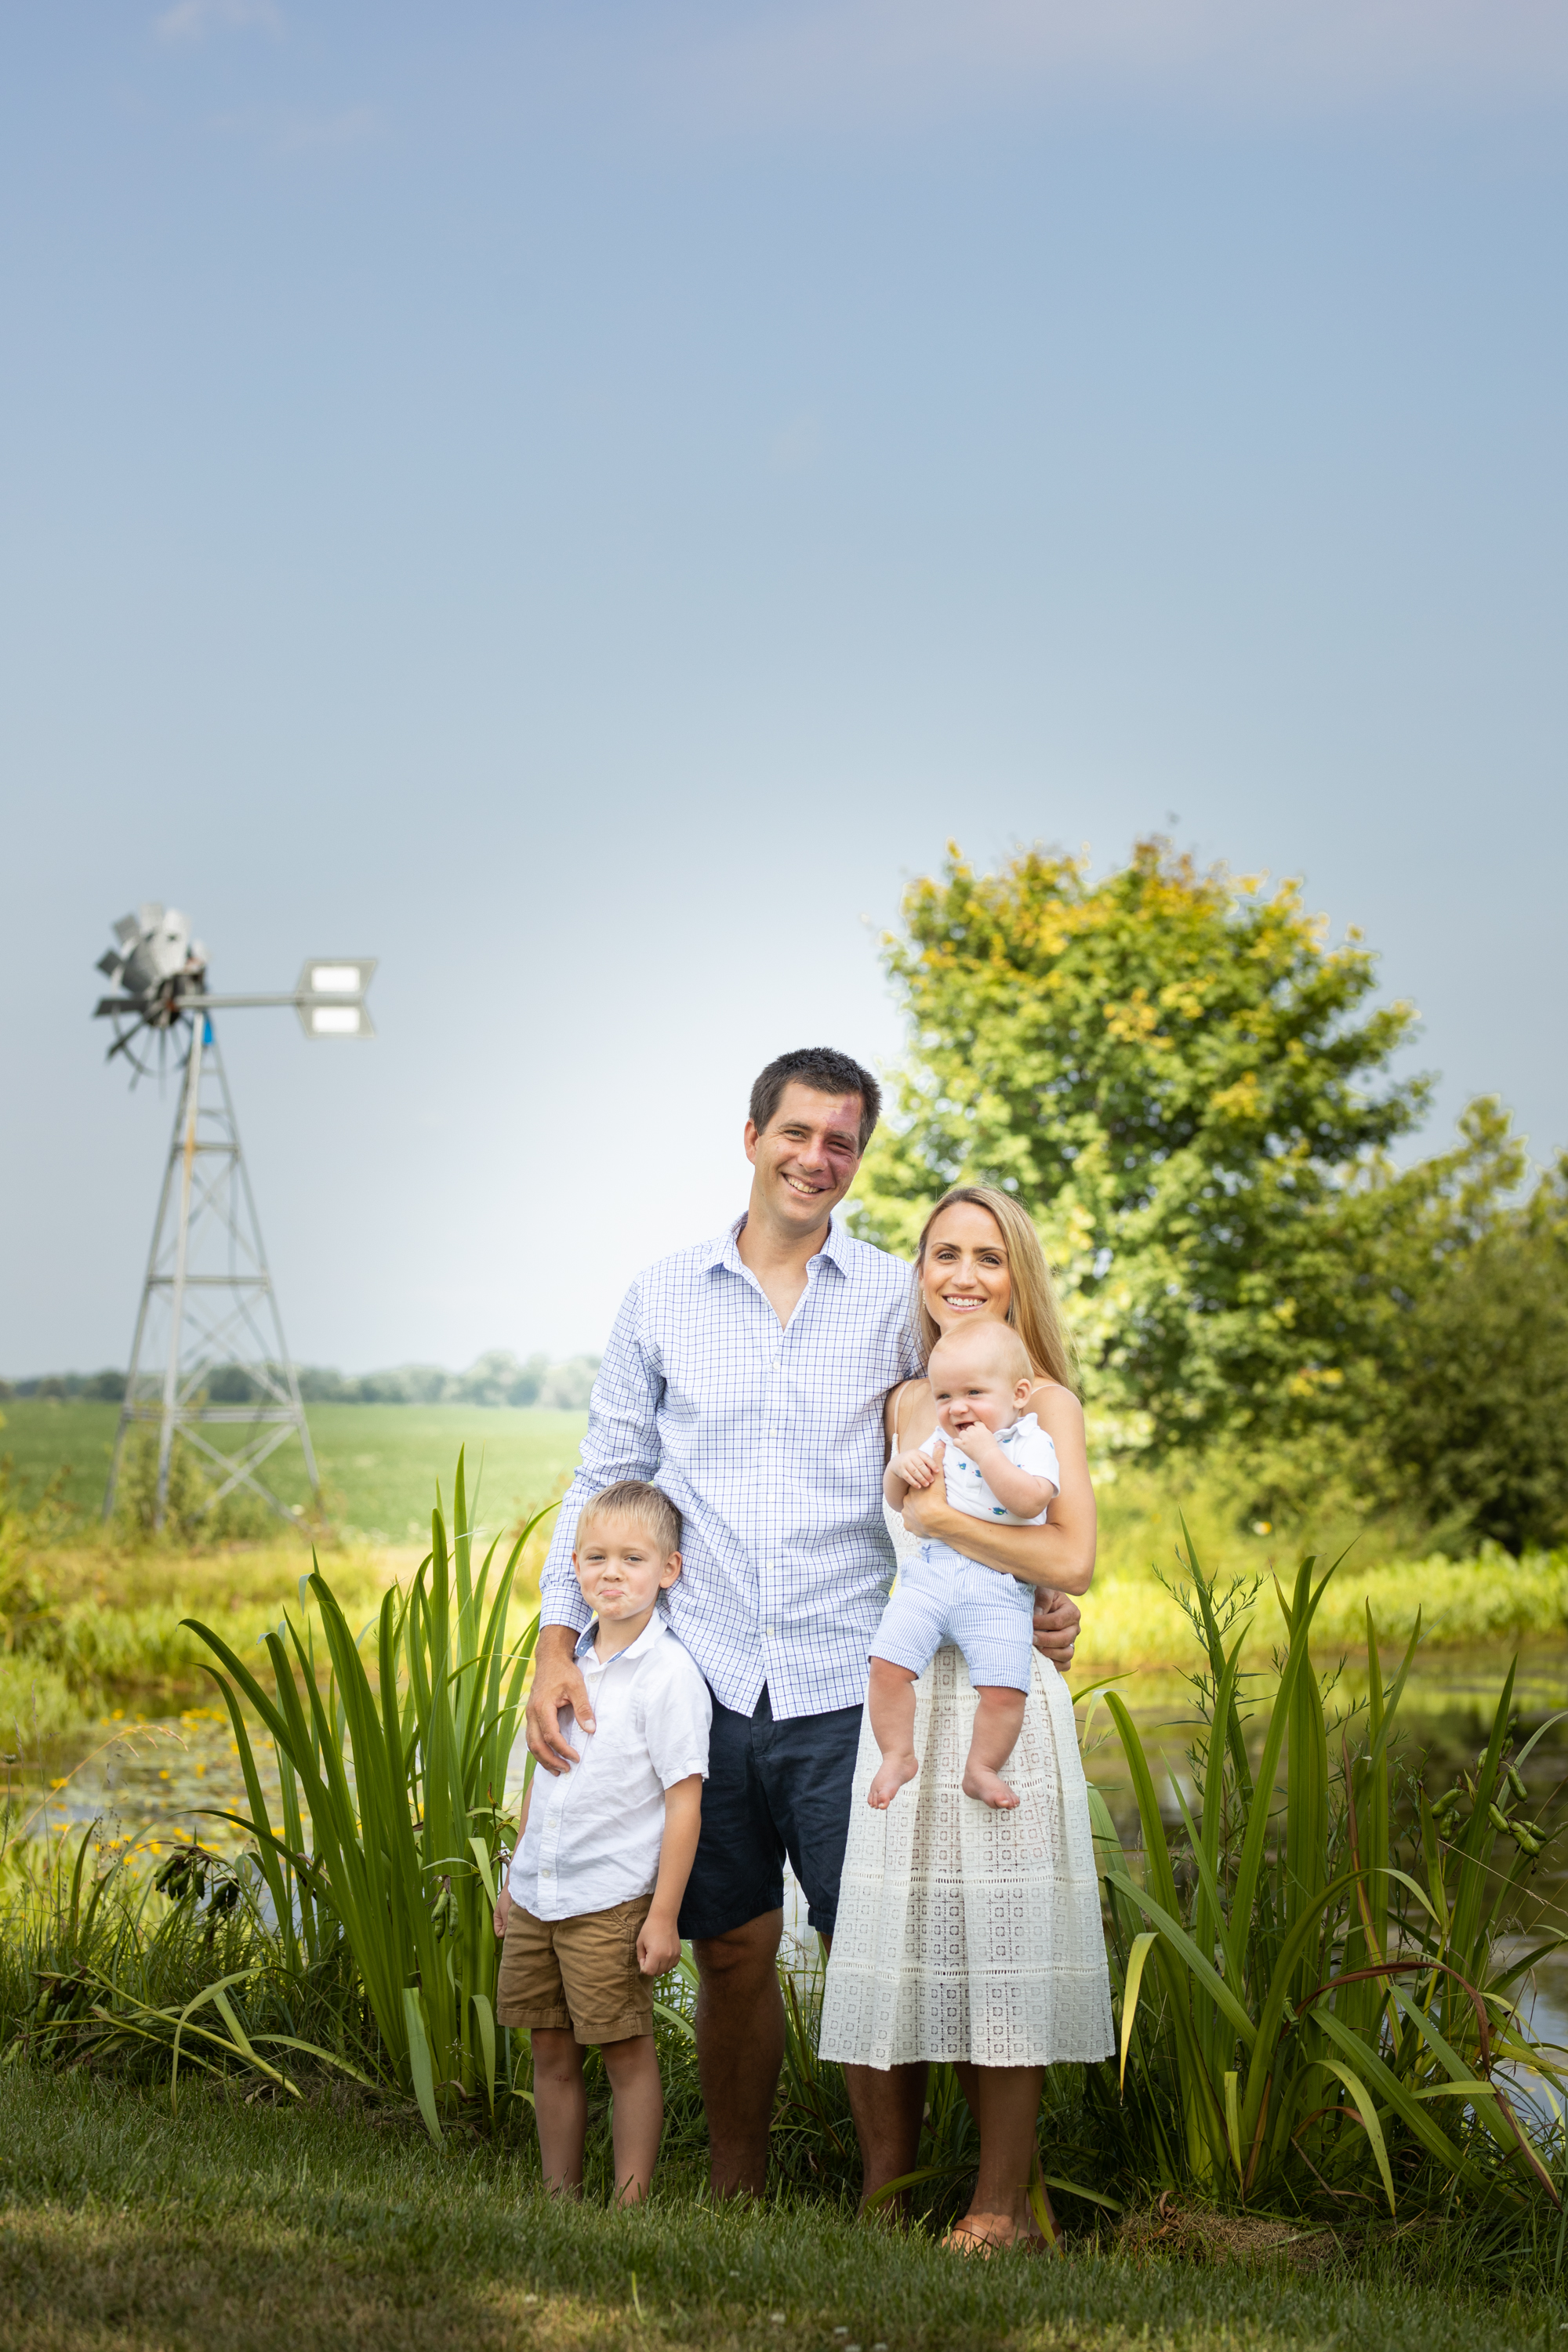 Family-agricultural-photographer-jodie-aldred-photography-rural-country-farm-farmers-ontario-london-huron-middlesex-elgin-chatham-elgin-rural-country-outdoors-windmill-pond-summer.jpg